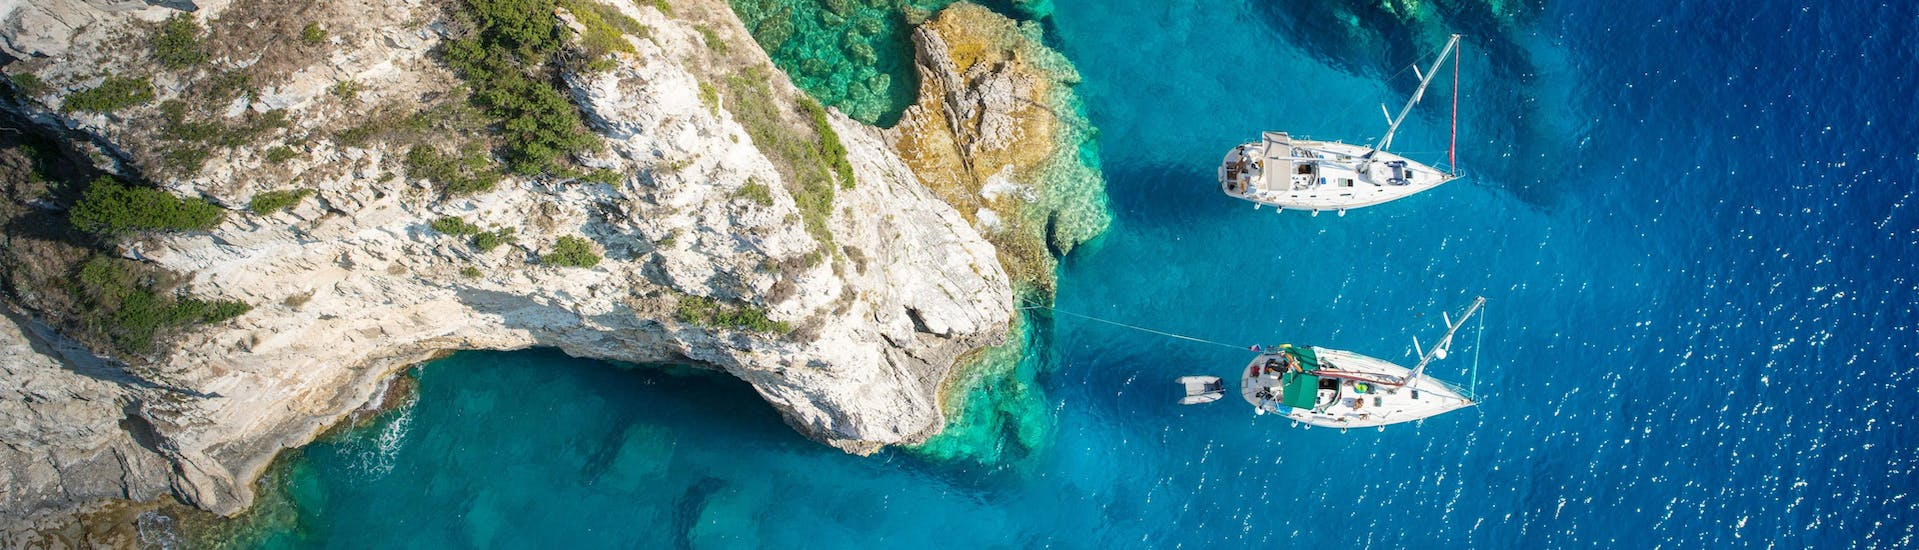 Aerial view of a cove on the island of Paxos where boats are moored, a popular destination in Greece for boat trips.